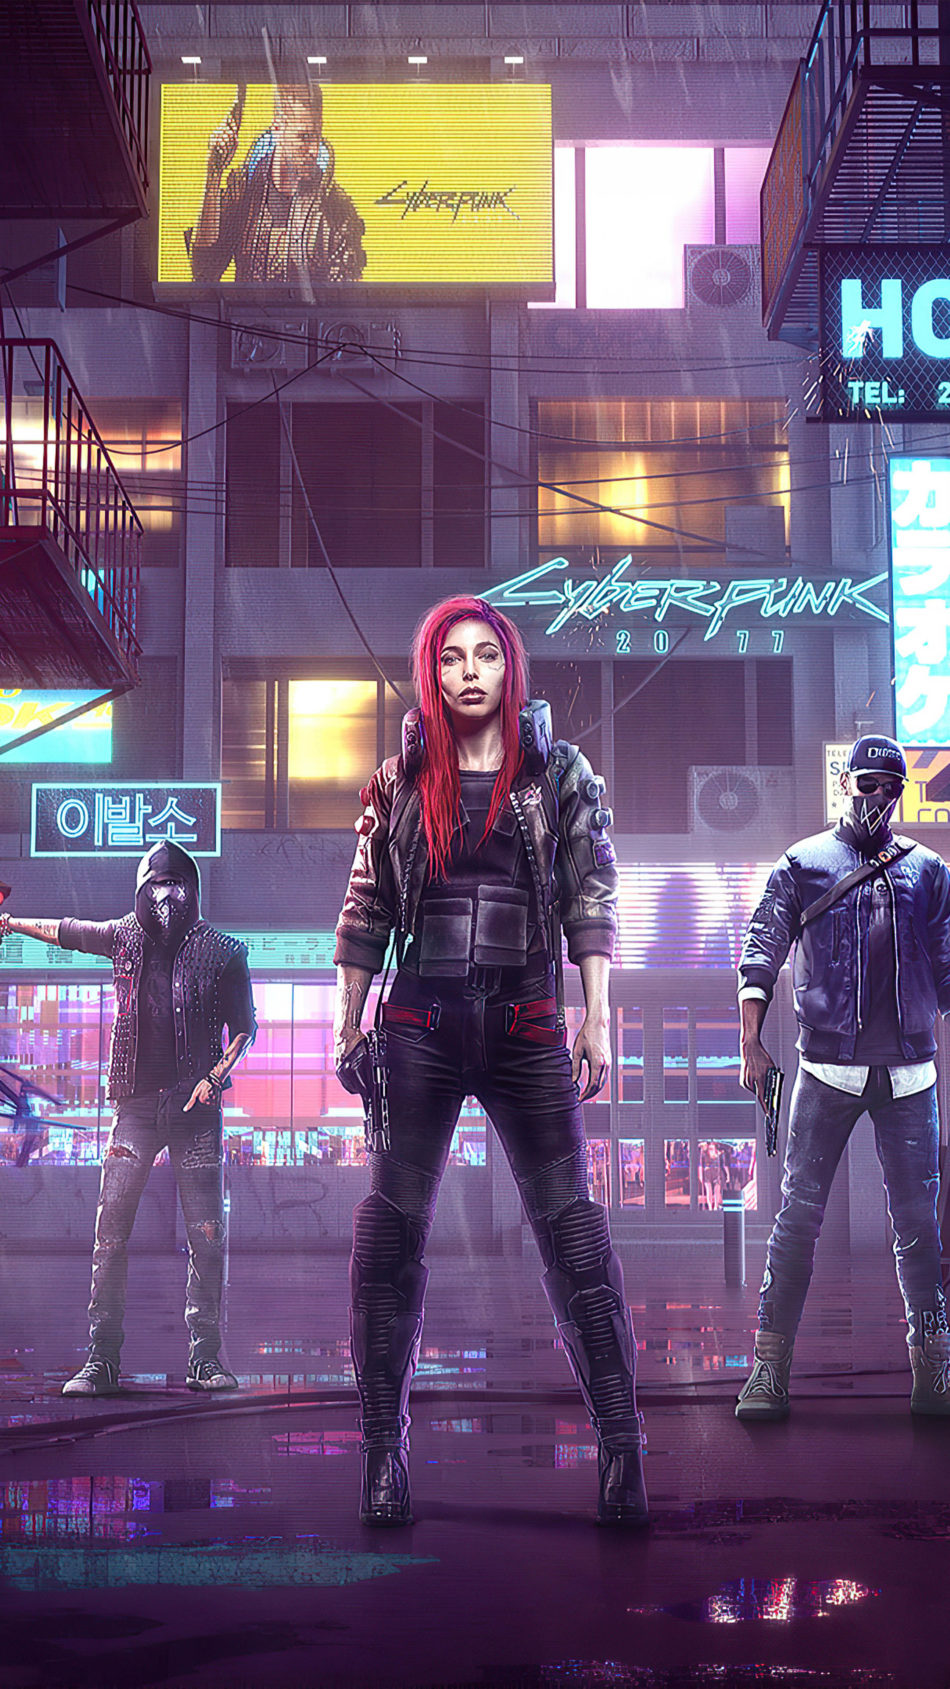 Cyberpunk 2077 New 2020 Game Poster 4K Ultra HD Mobile Wallpaper